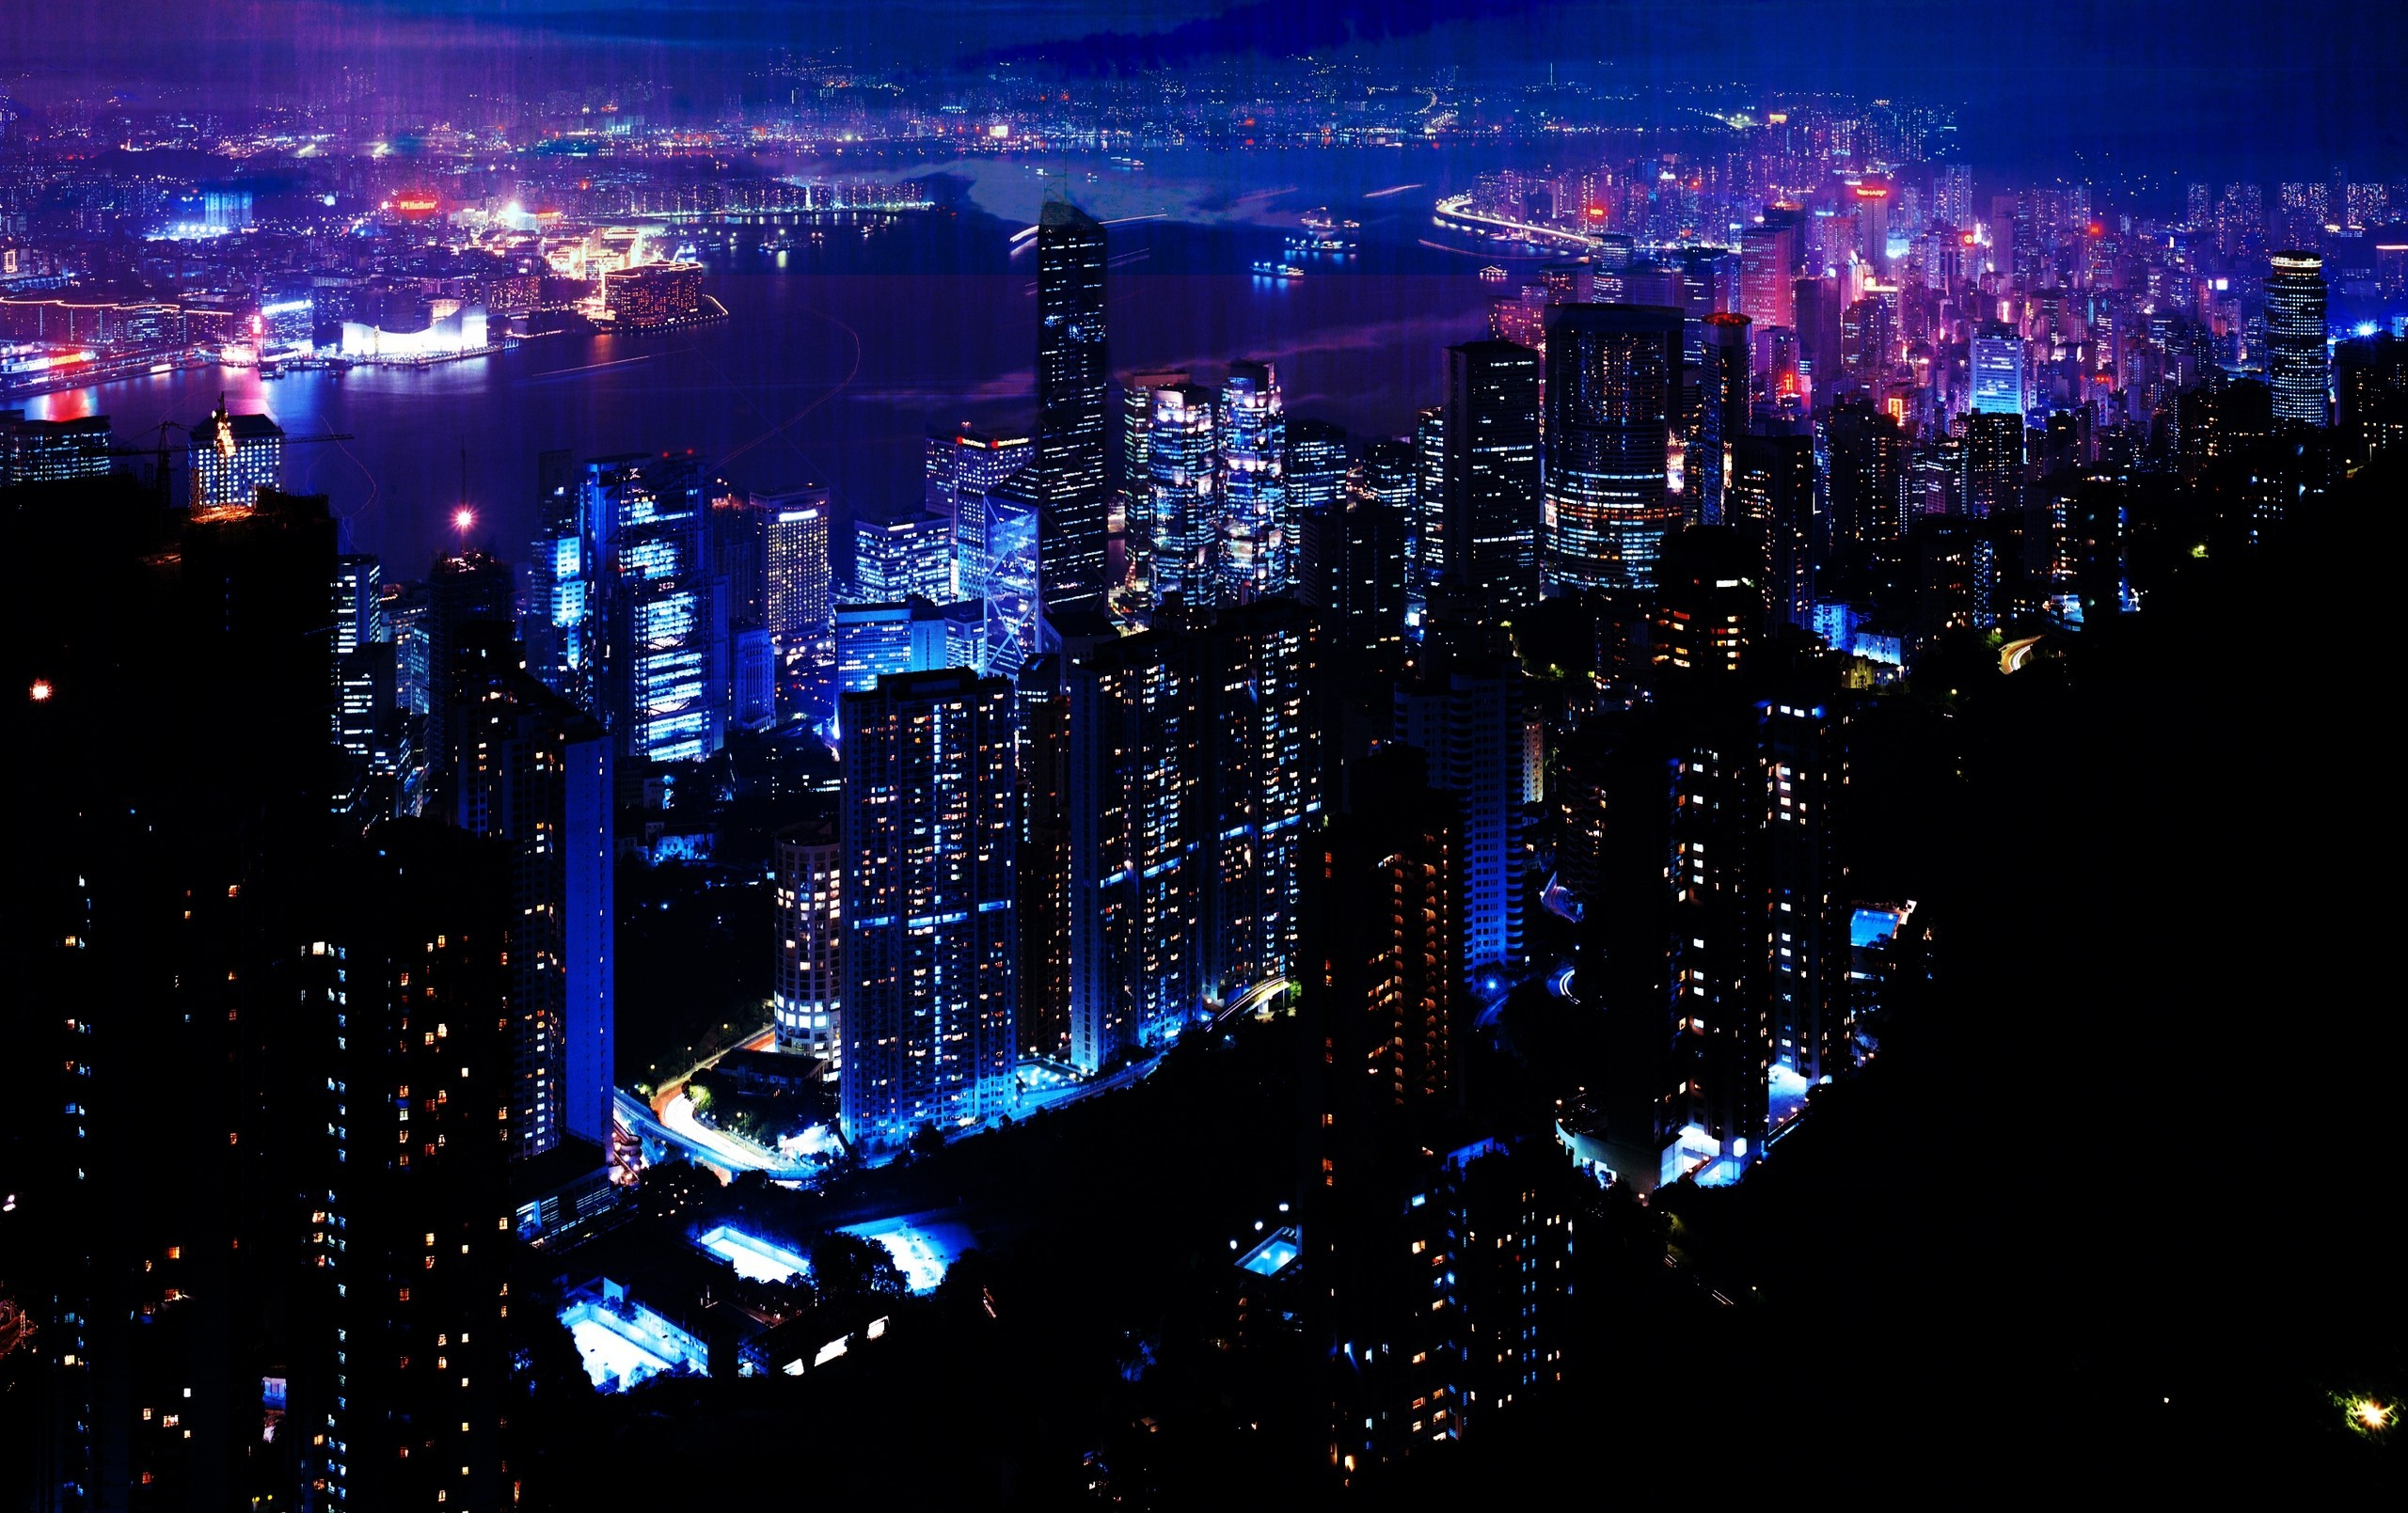 night skyscrapers cities wallpaper | allwallpaper.in #14924 | pc | en